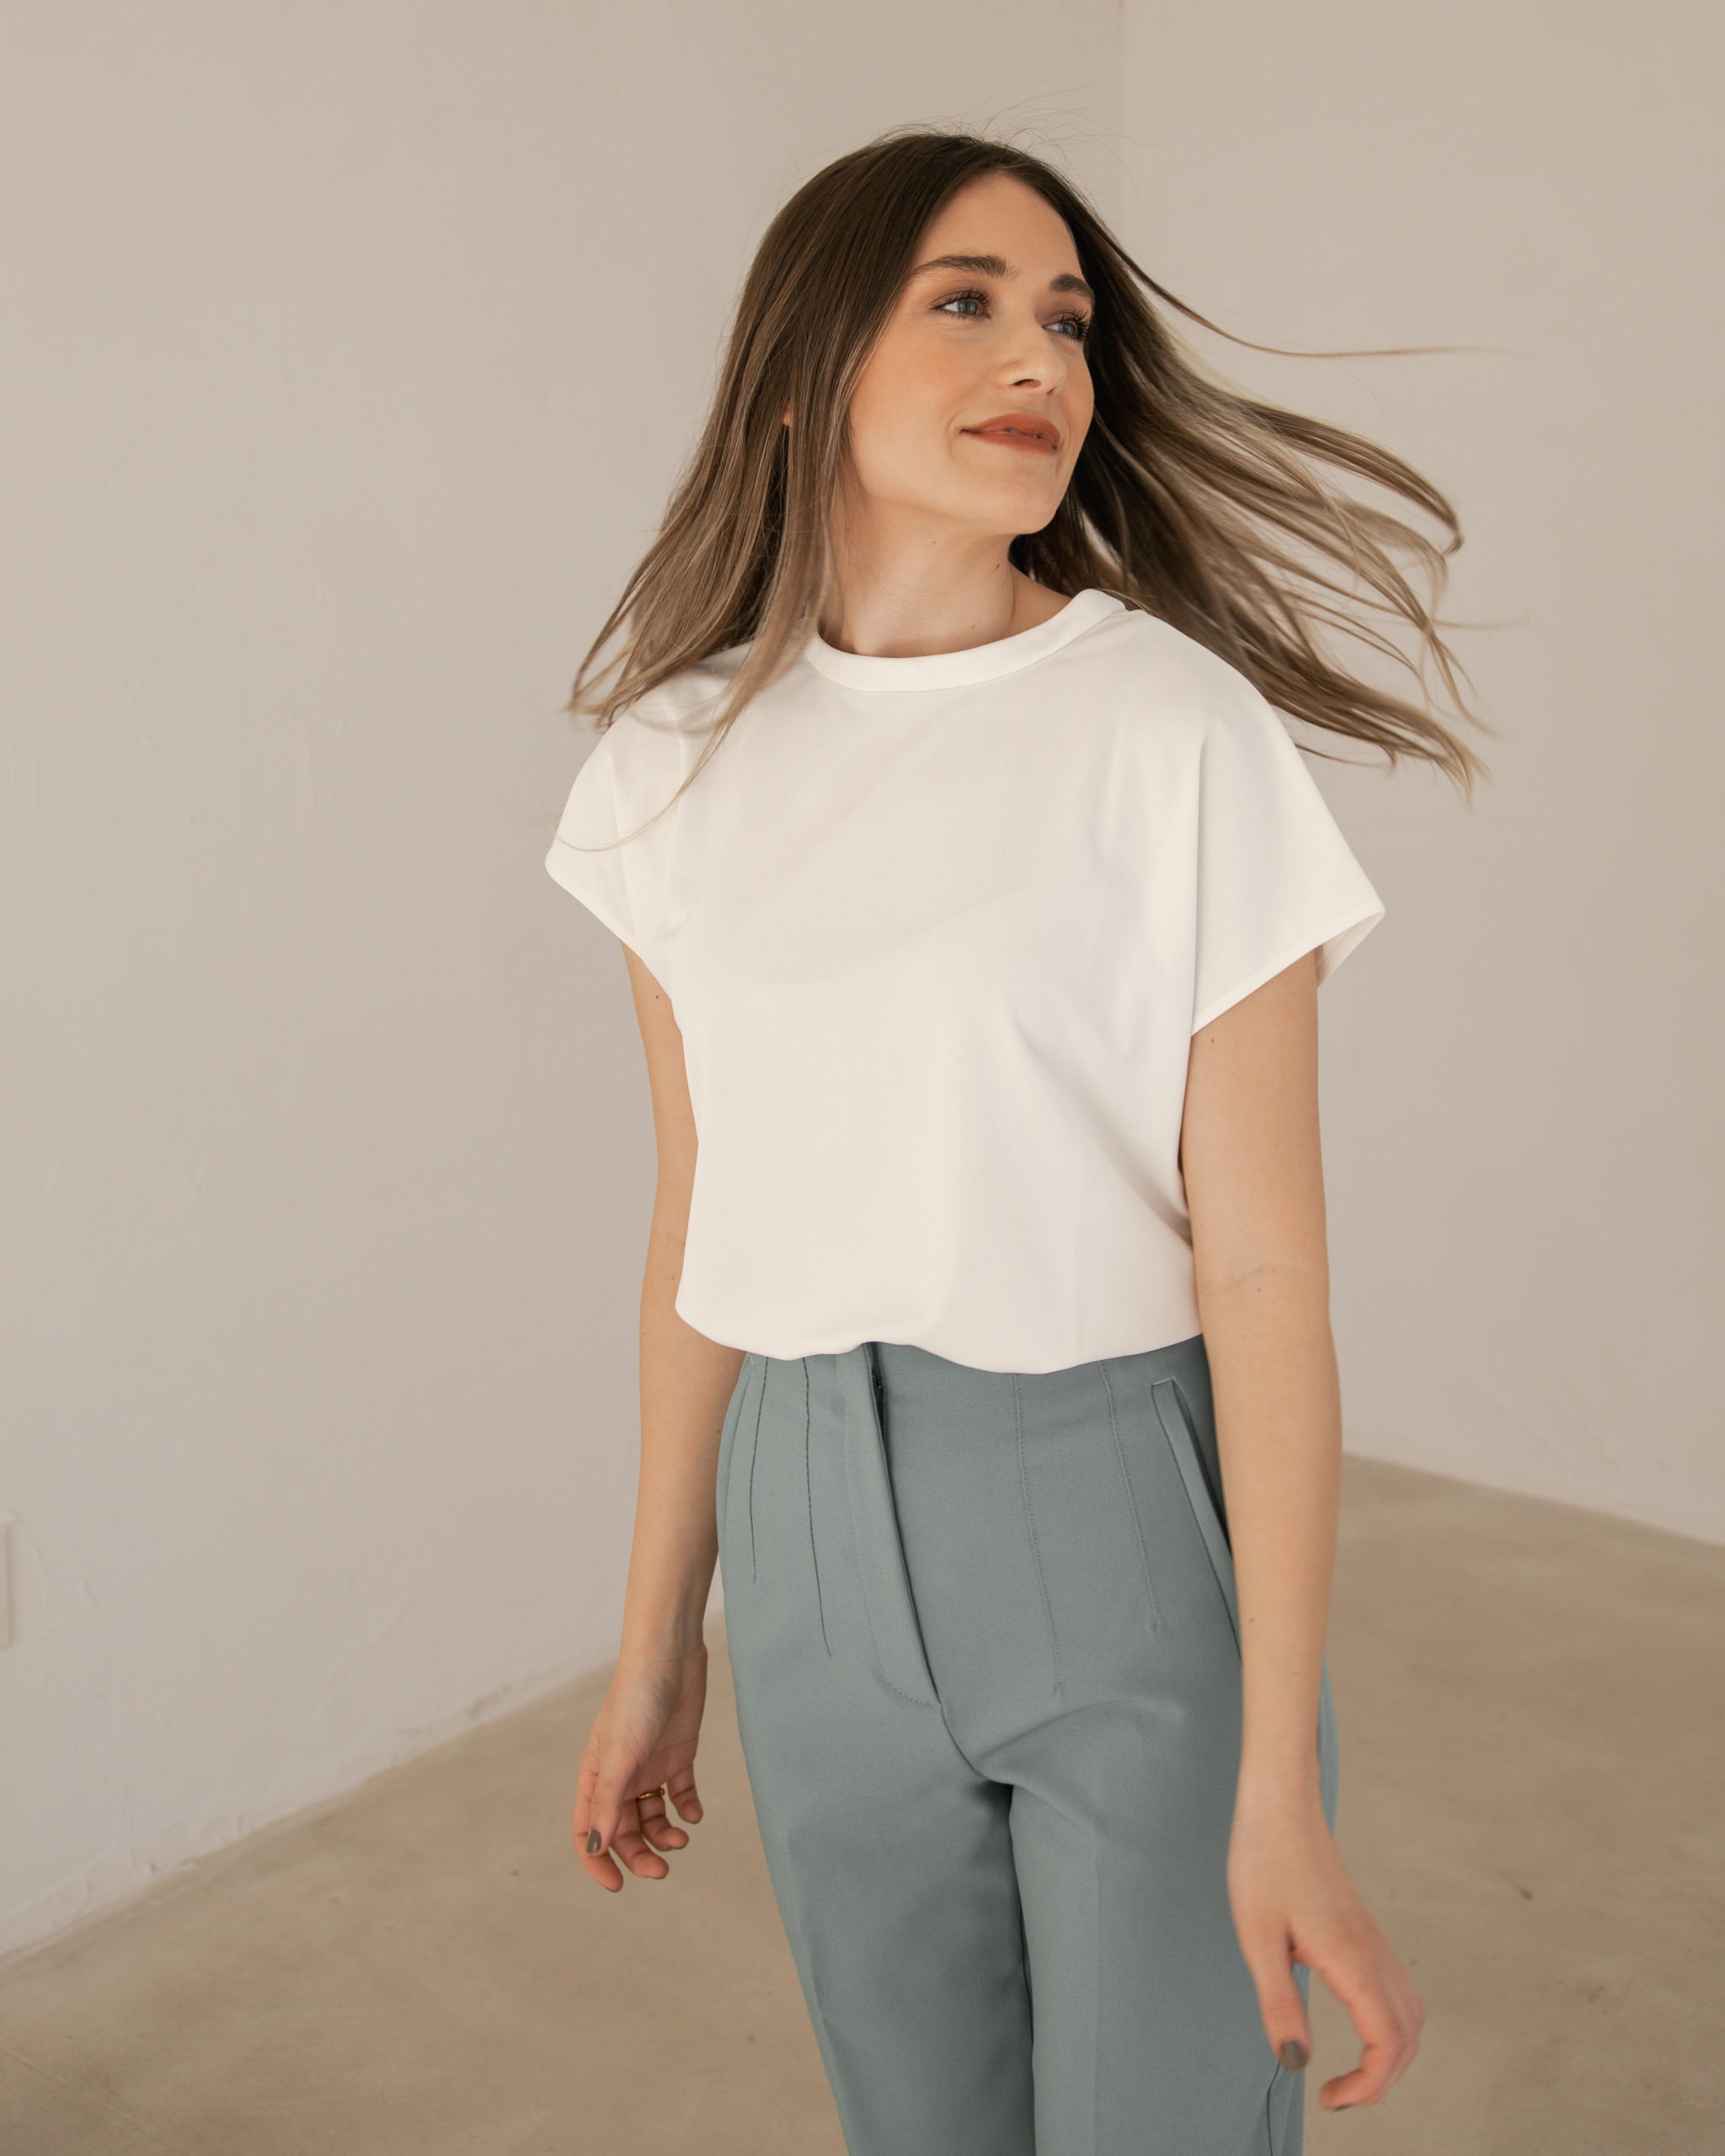 2021 Color Trend: Sage Green | Twinspiration